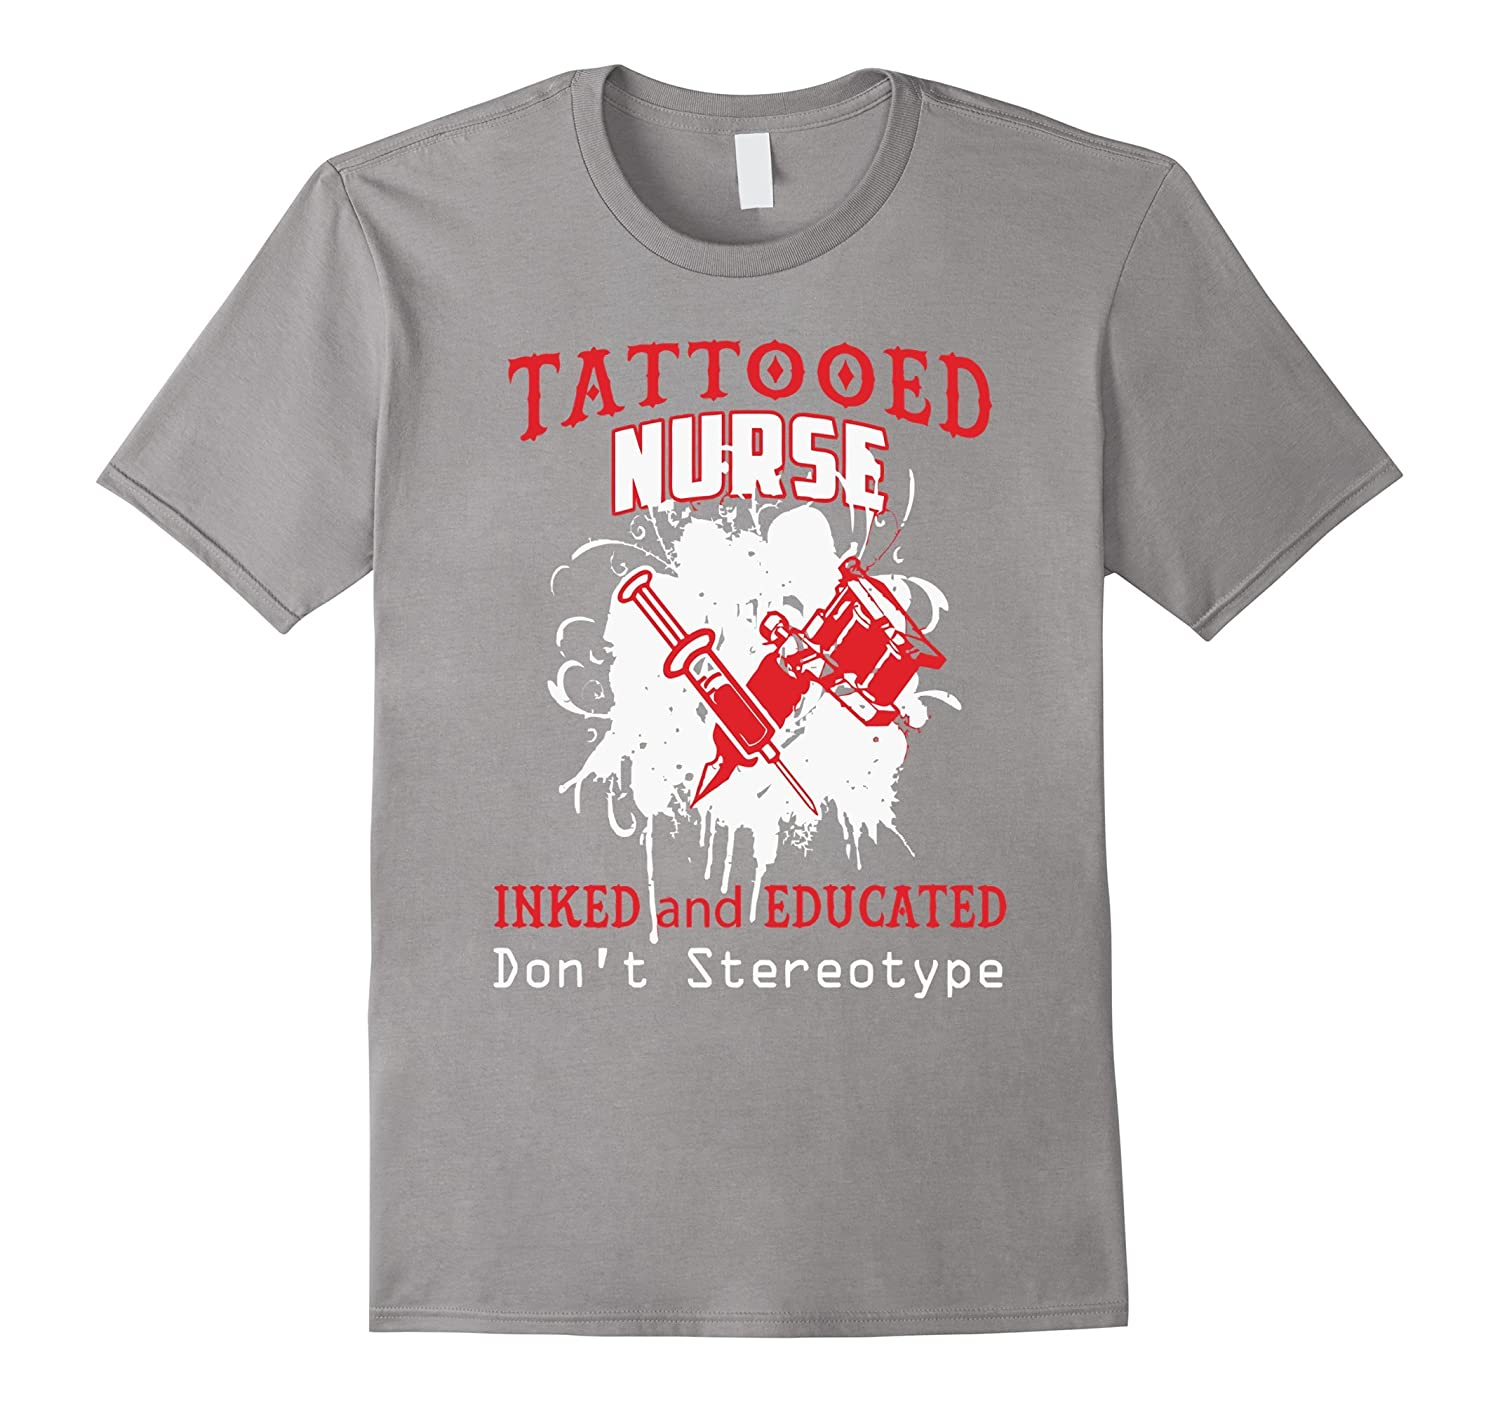 Tattooed nurse inked and educated dont stereotype t shirt for Tattooed nurse shirt